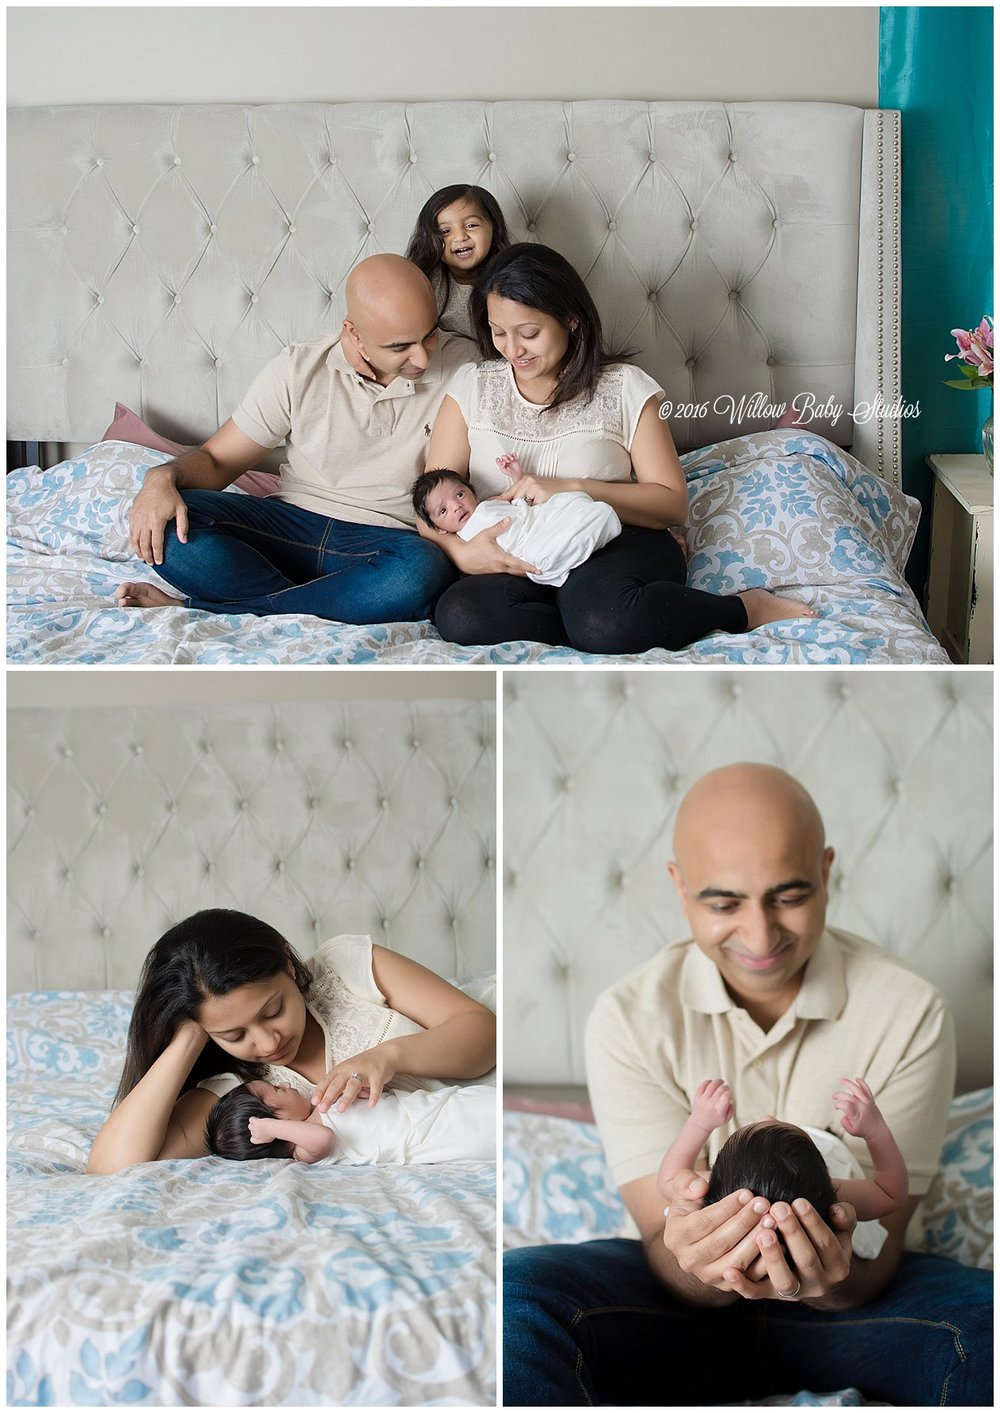 set-of-three-photos-family-of-four-on-bed-mom-and-dad-each-with-newborn